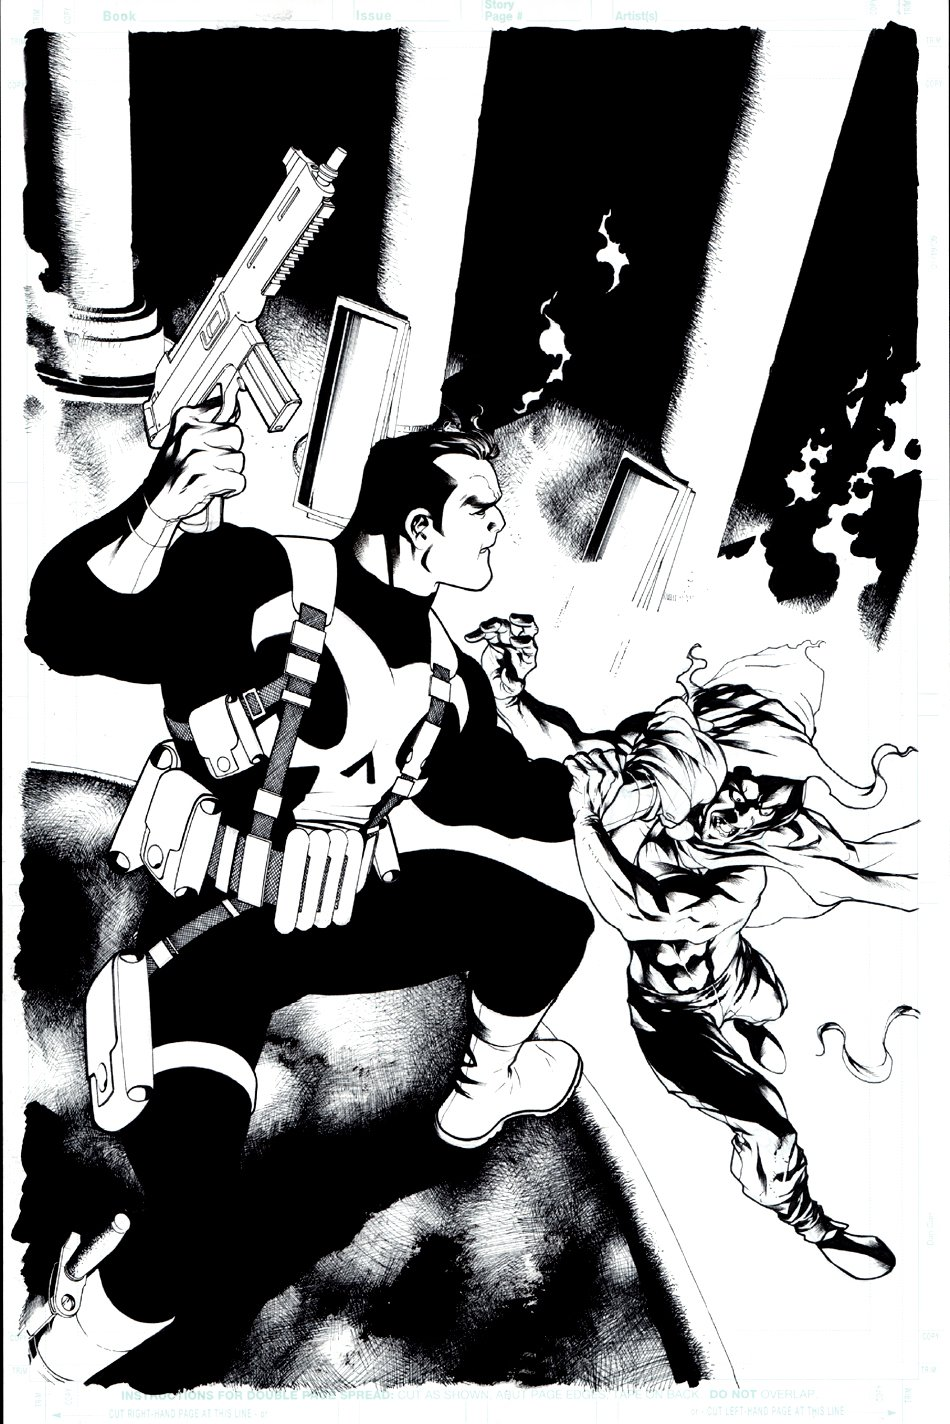 Punisher #10 Cover (2009)